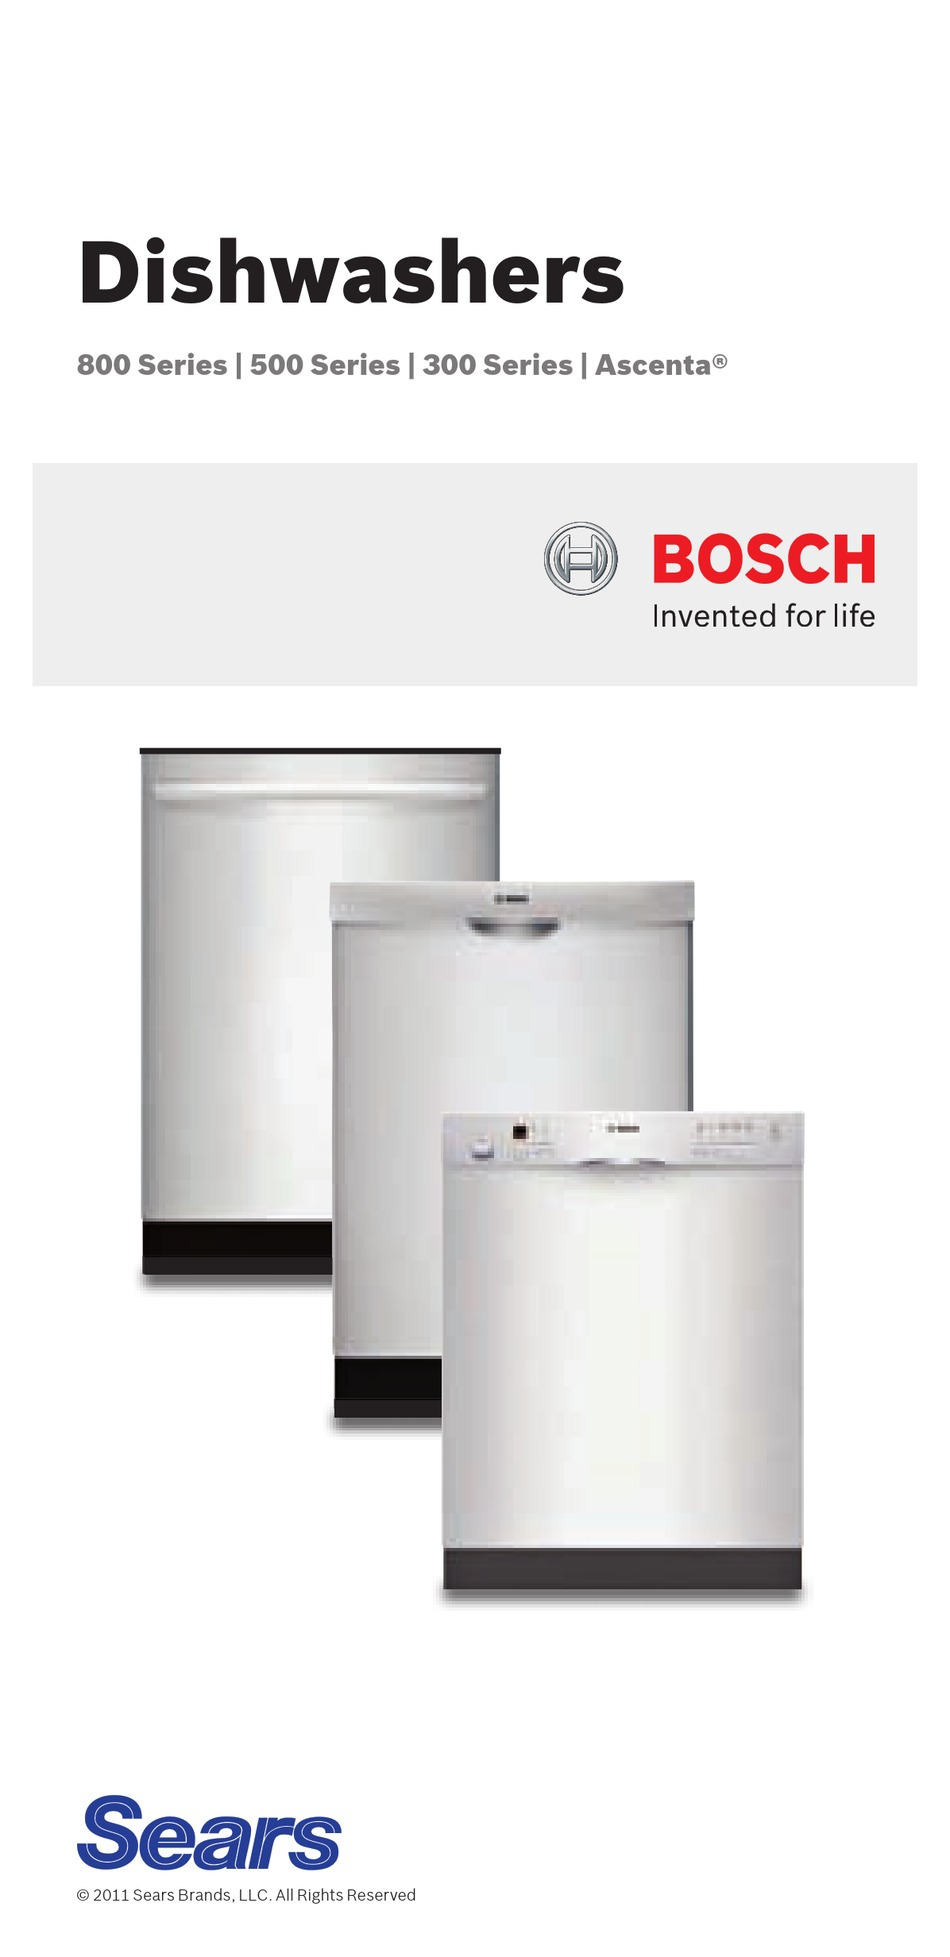 Bosch 800 Series Instructions For Use Manual Pdf Download Manualslib